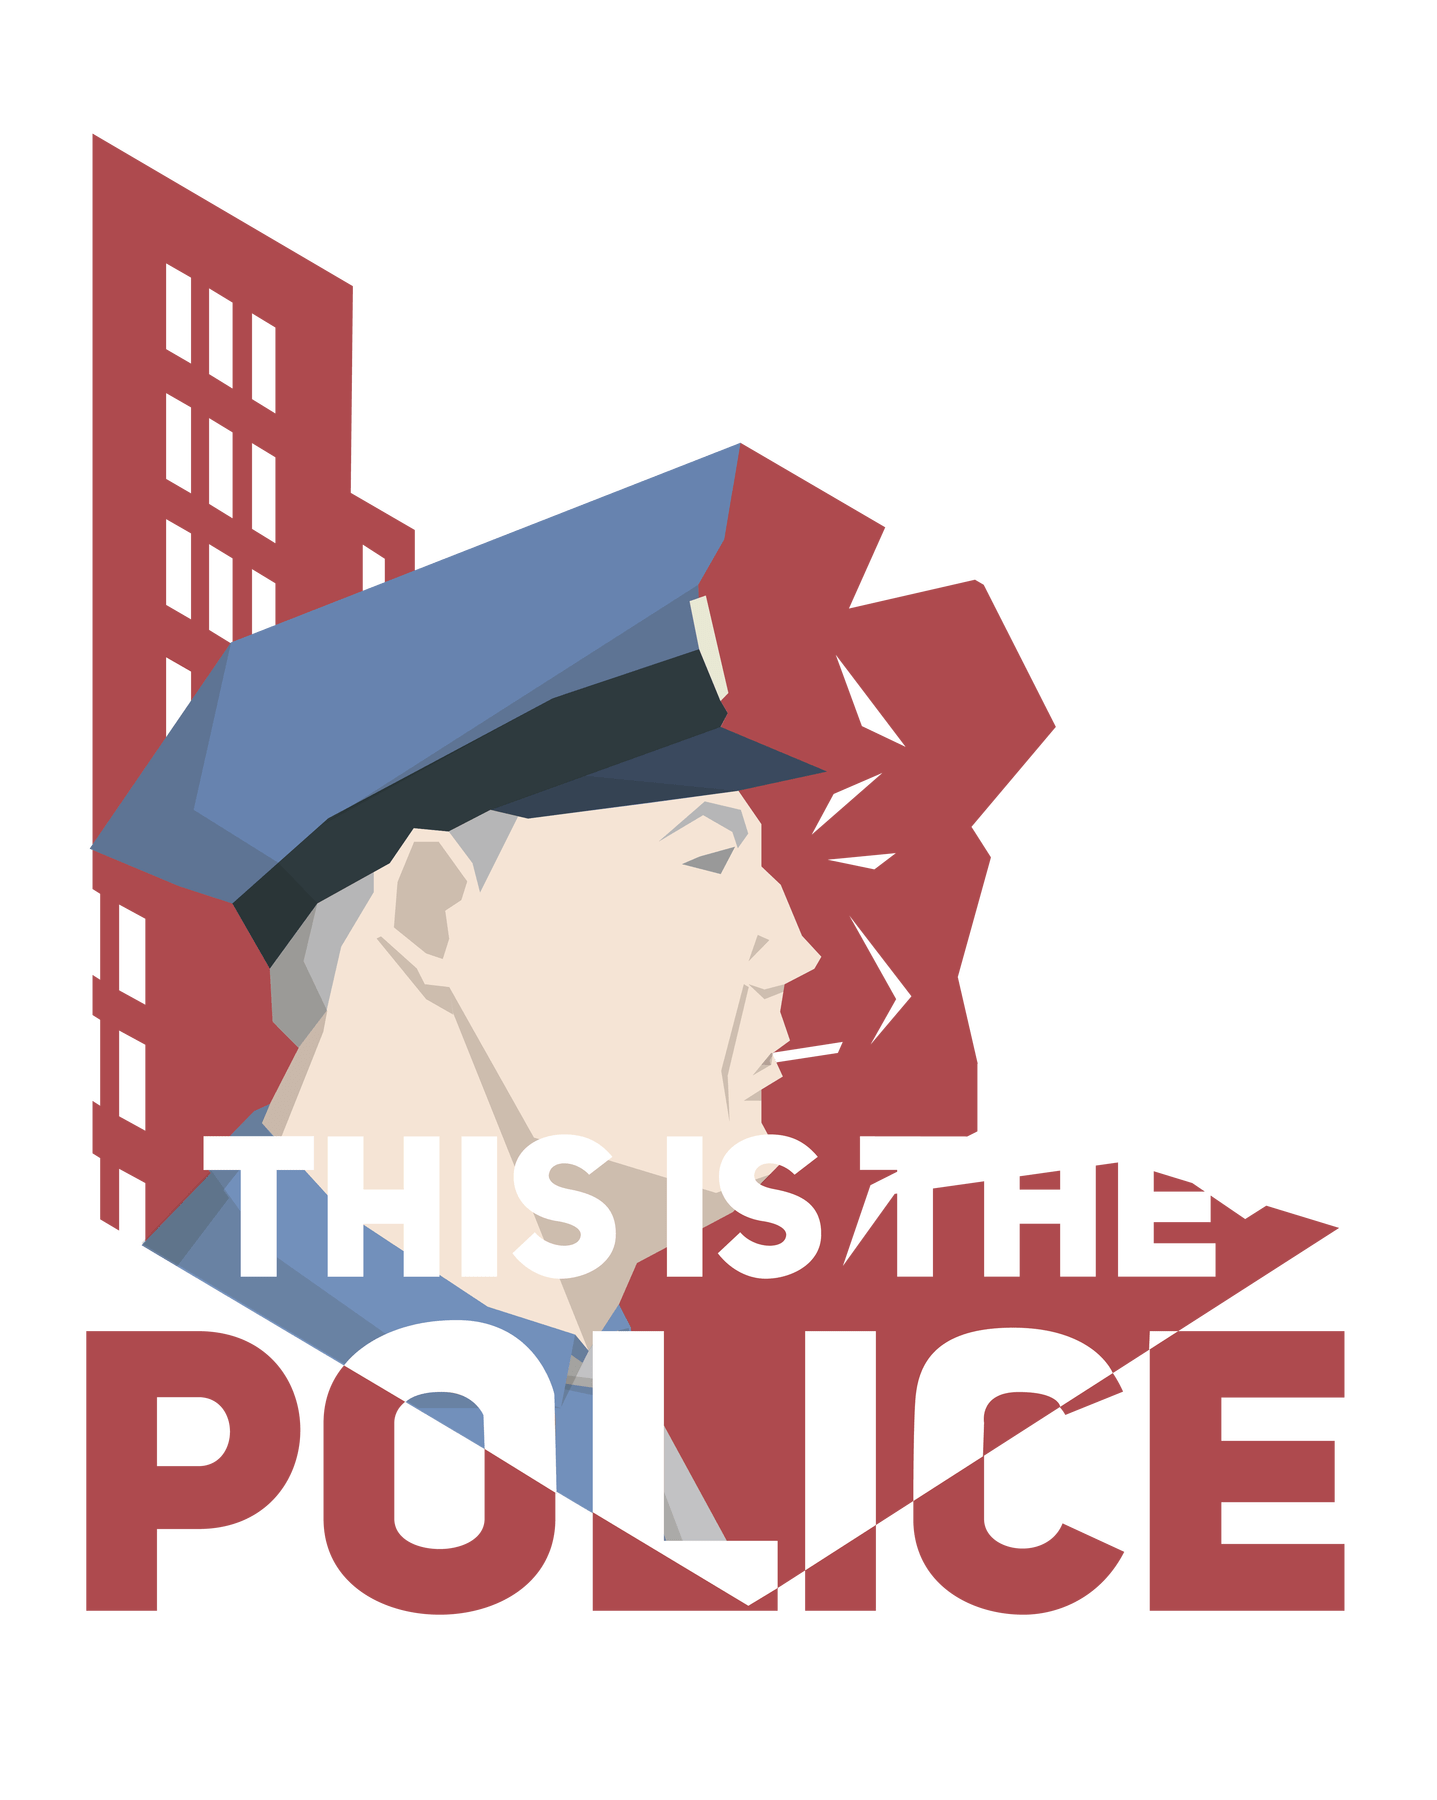 Graduation clipart streamer. This is the police